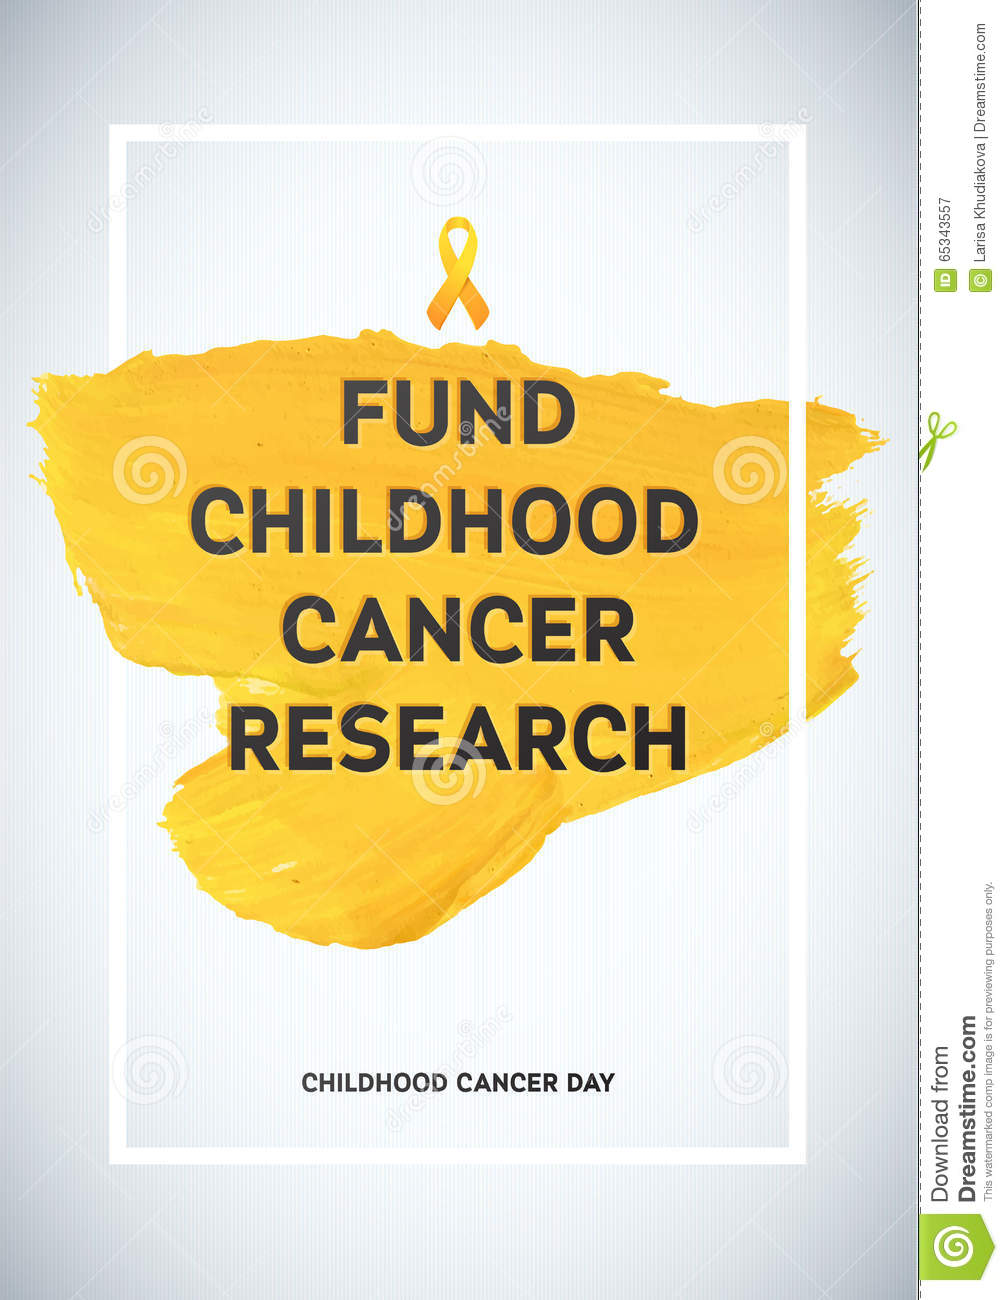 Childhood Cancer Awareness Poster Yellow Brush Strokes And Frame